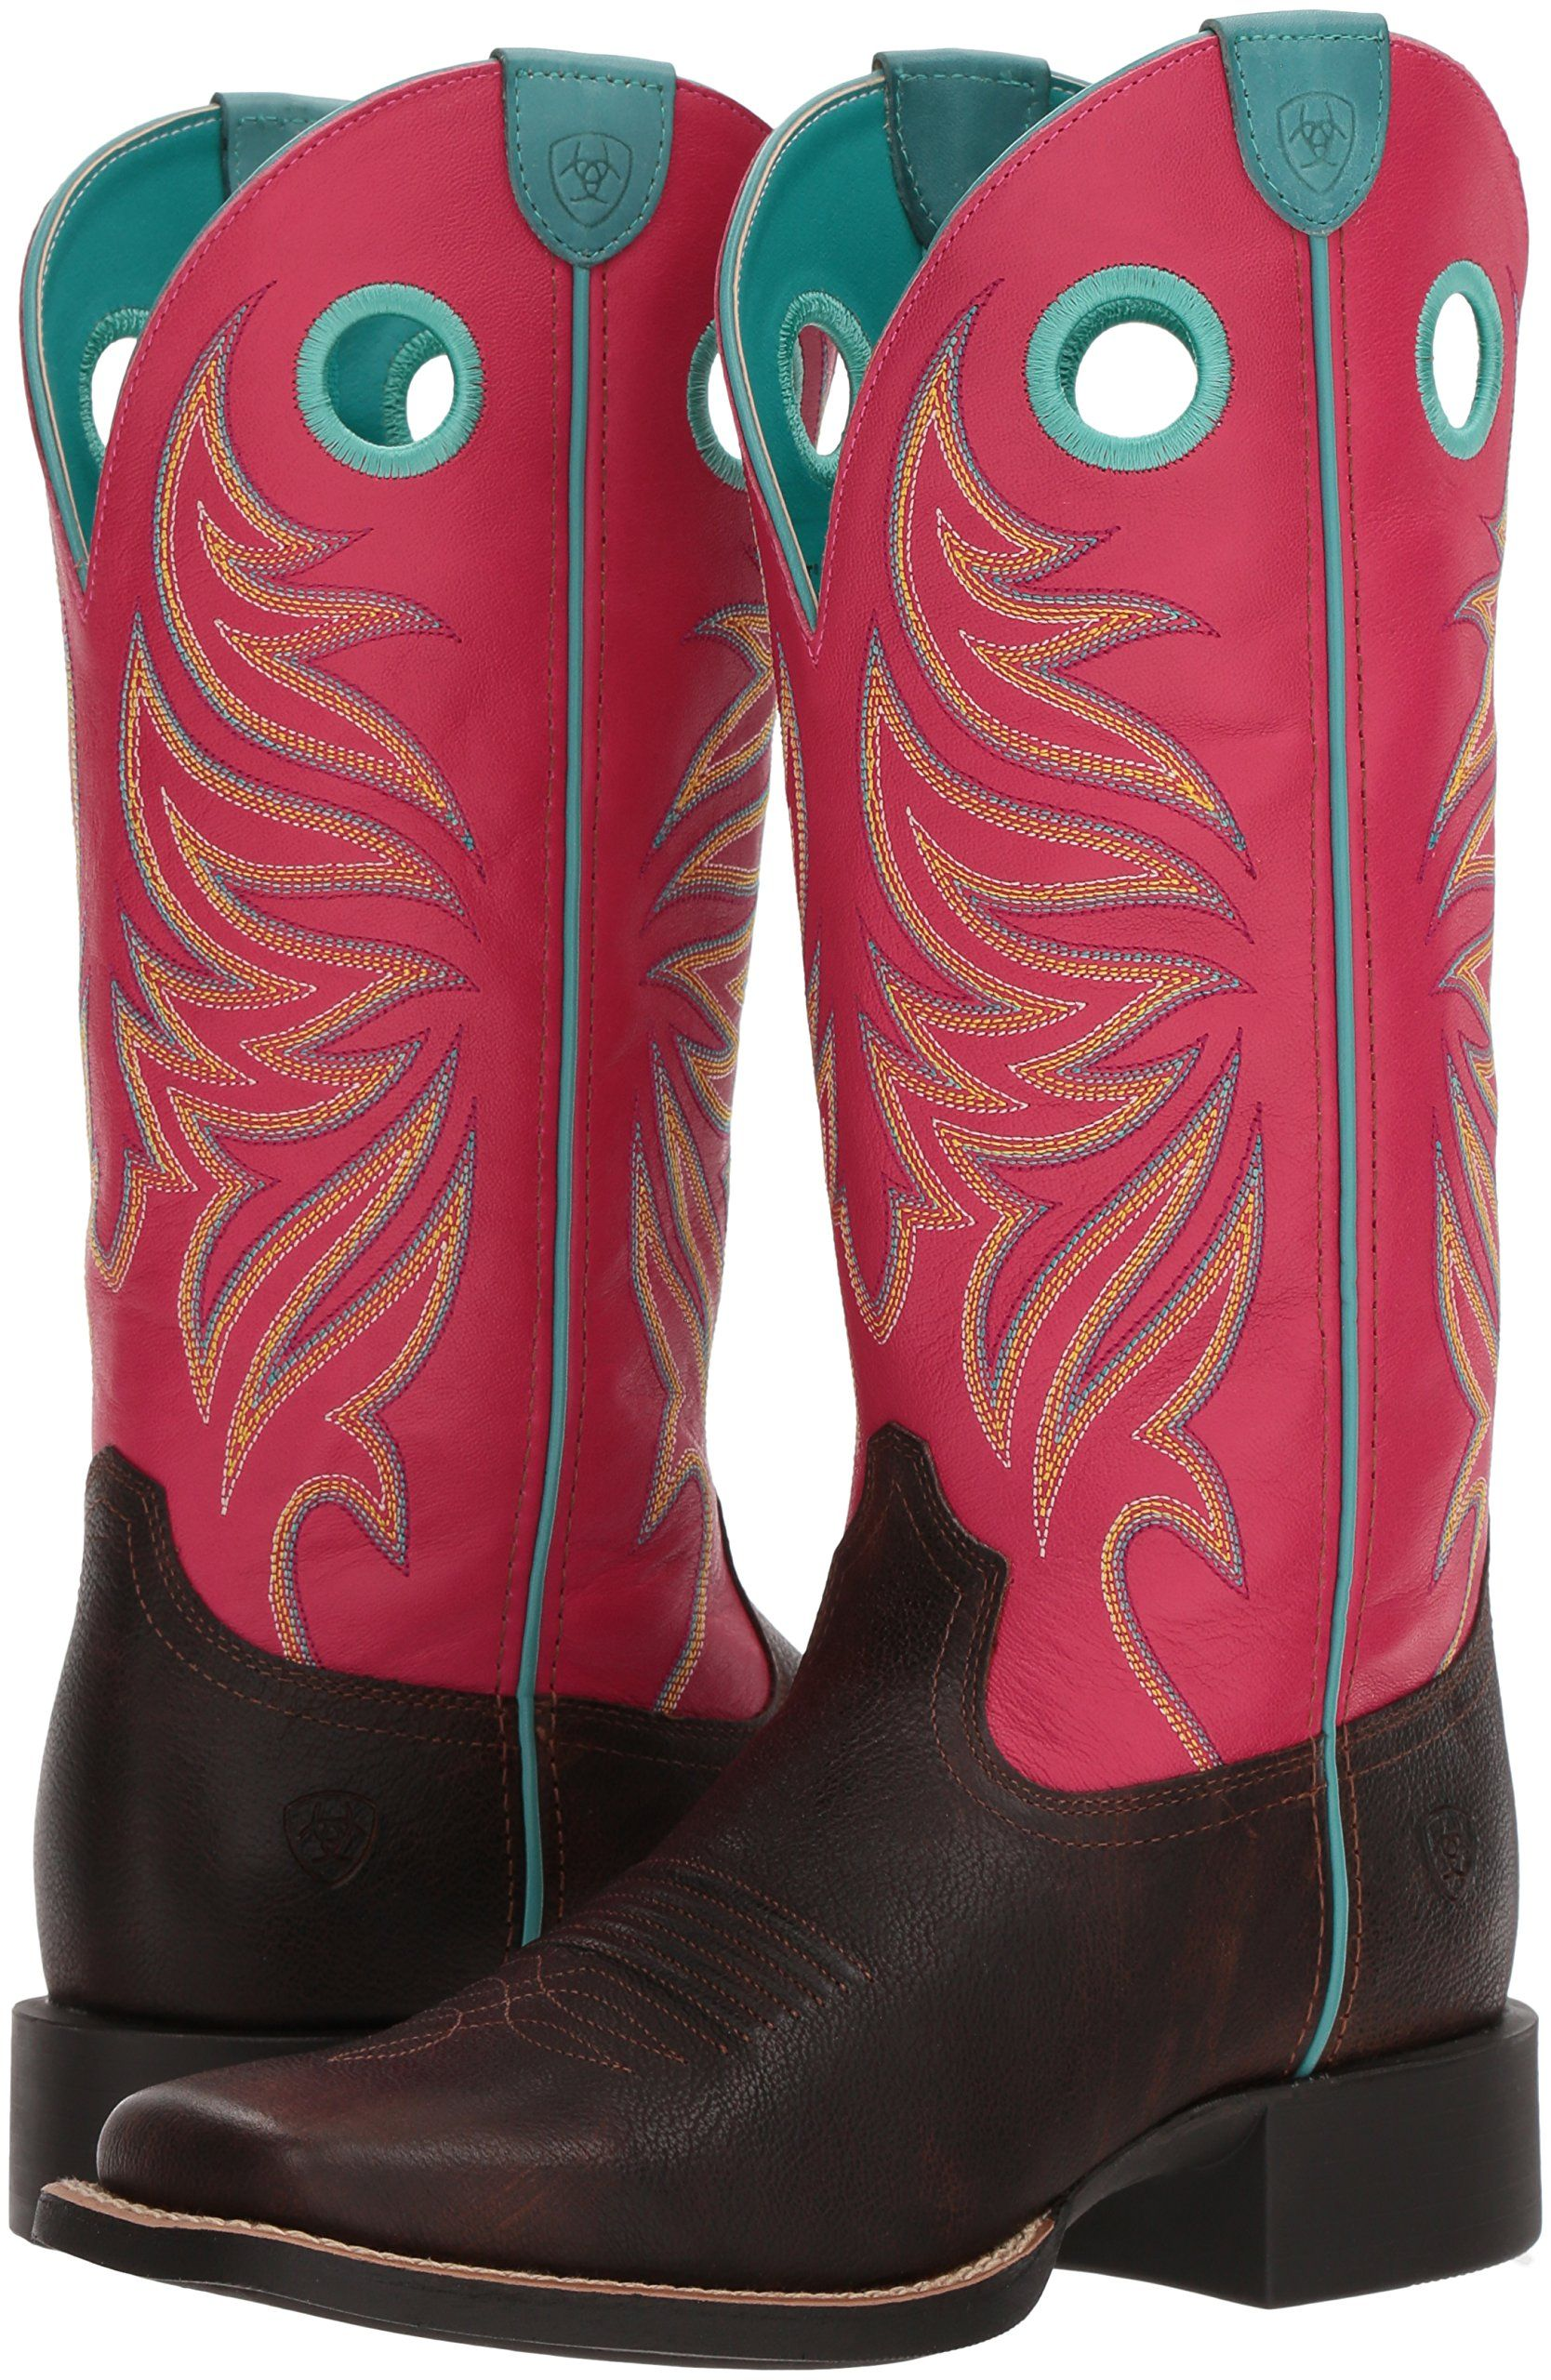 73aae187e05 Ariat Womens Round up Ryder Western Boot Yukon Chocolate Magenta 11 B US     For more information